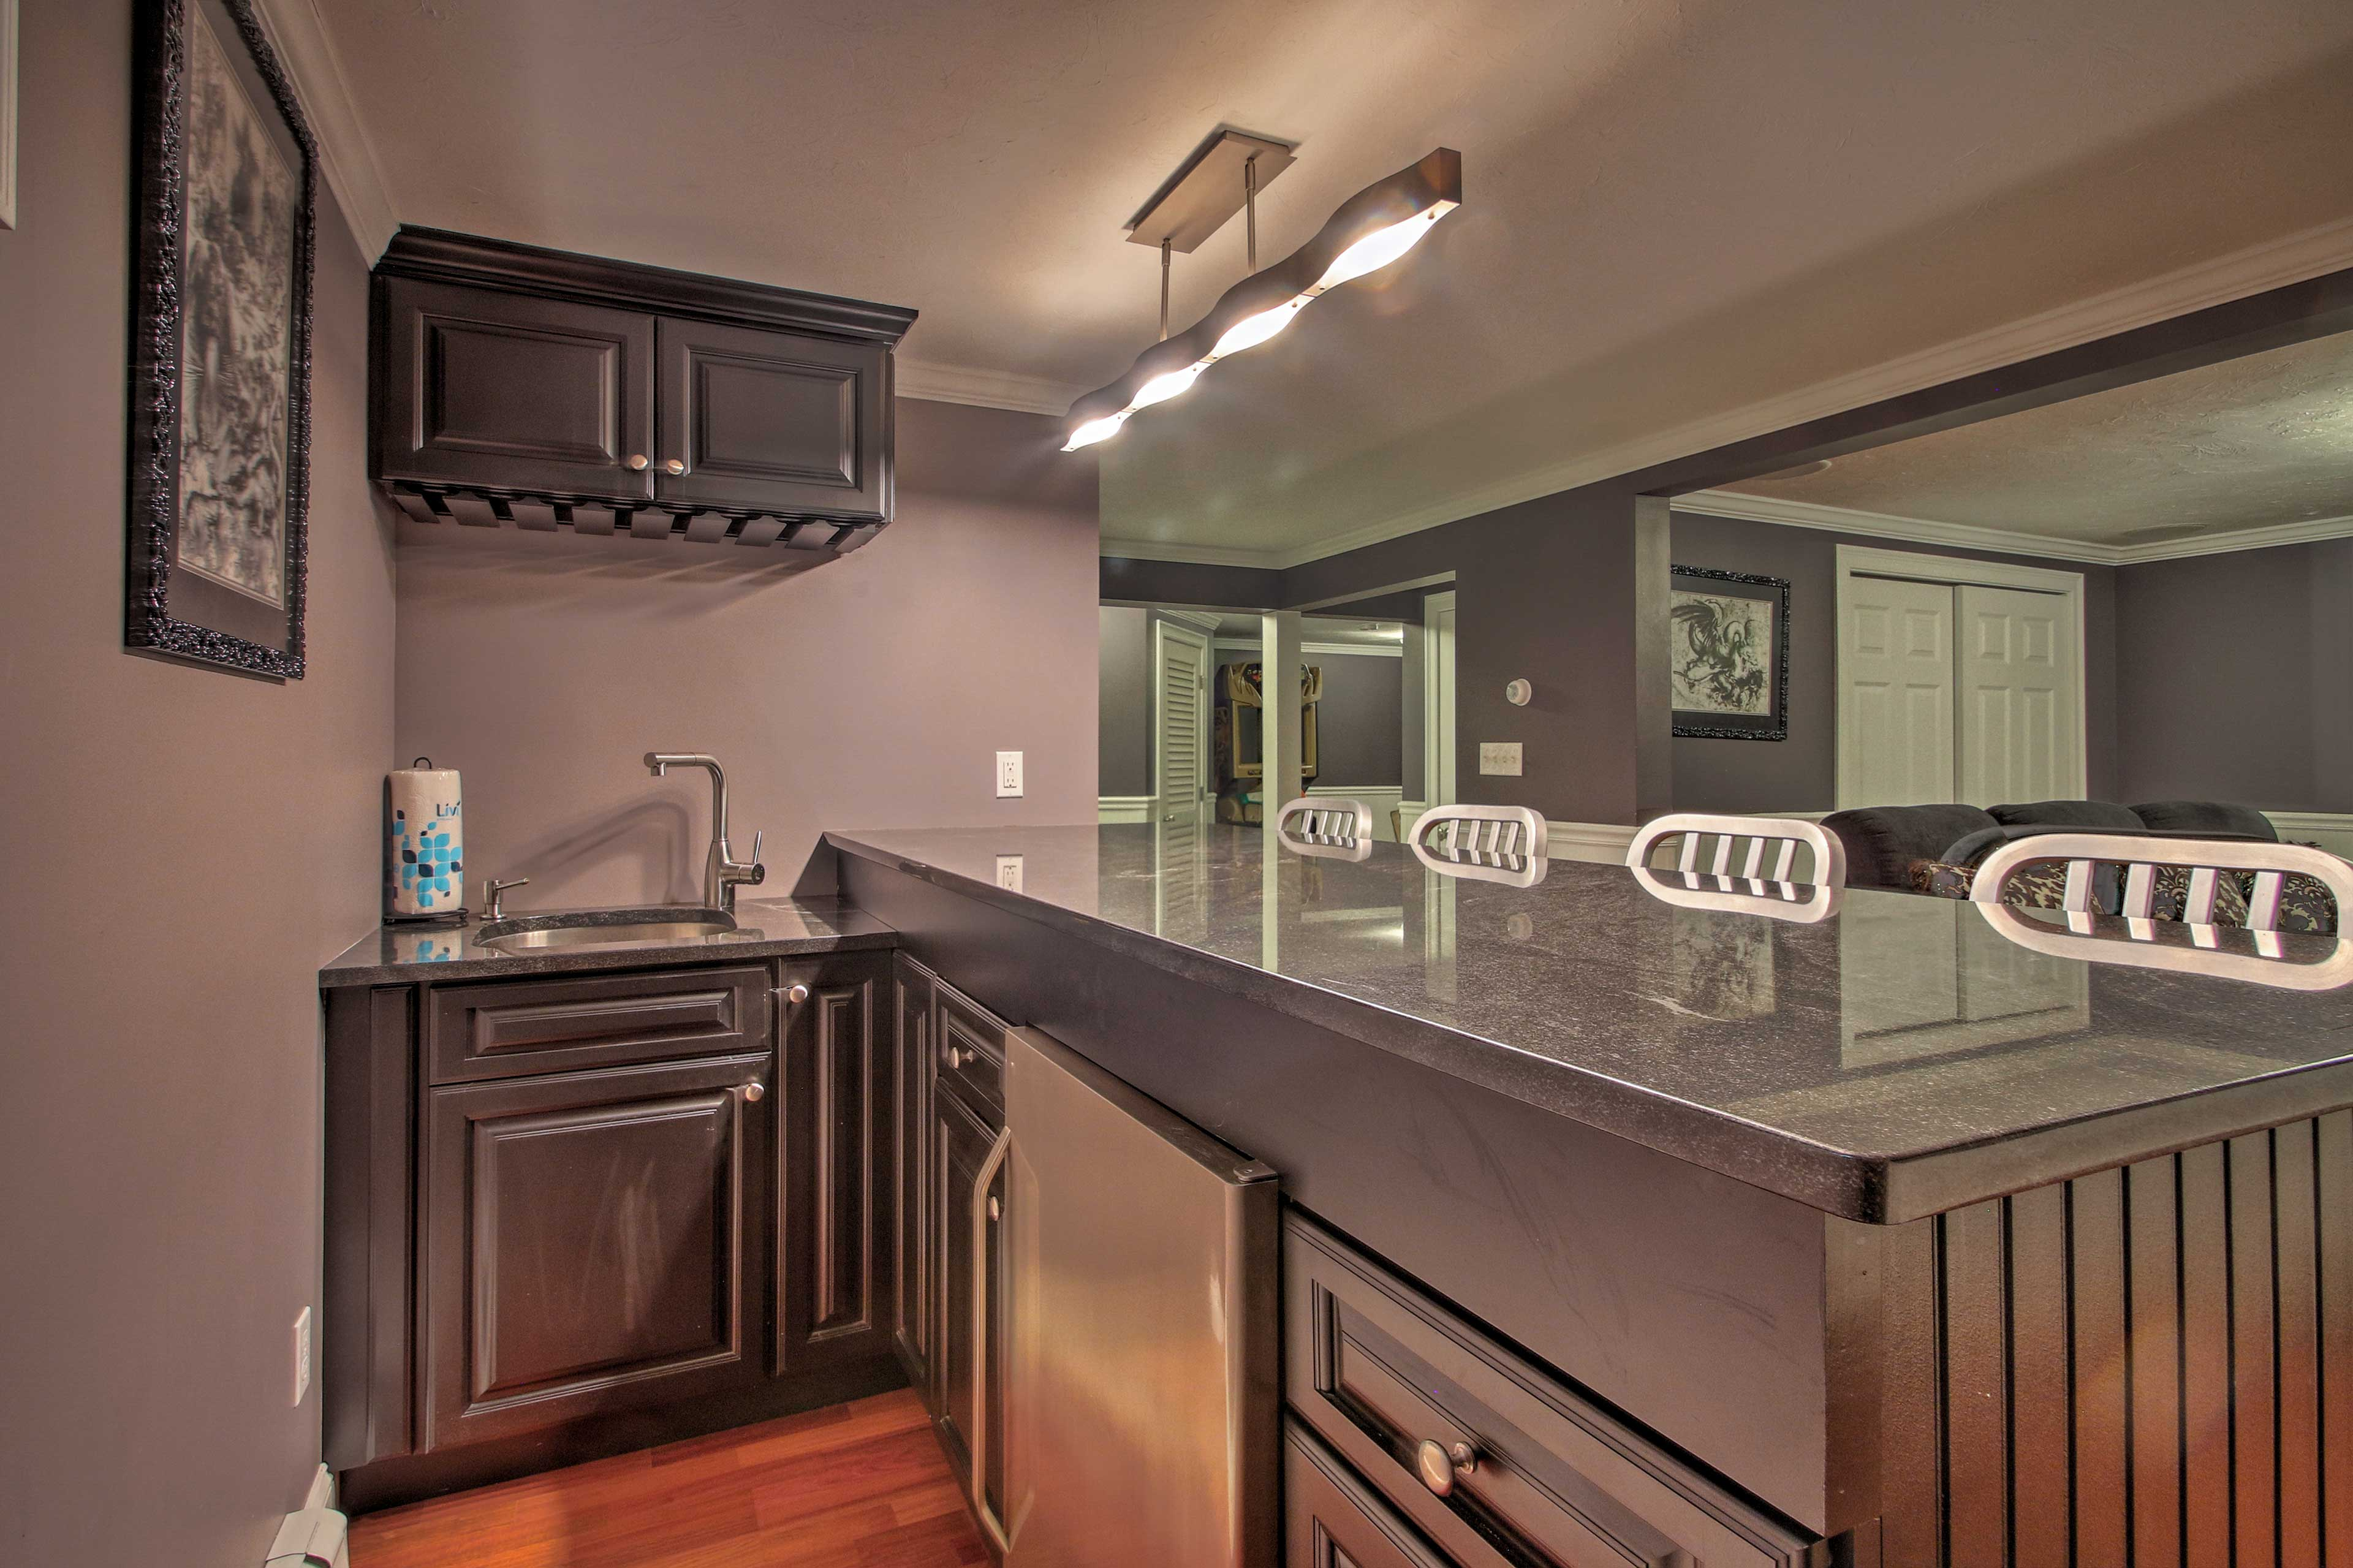 The area also features a full bar with a mini-fridge and wine cooler!